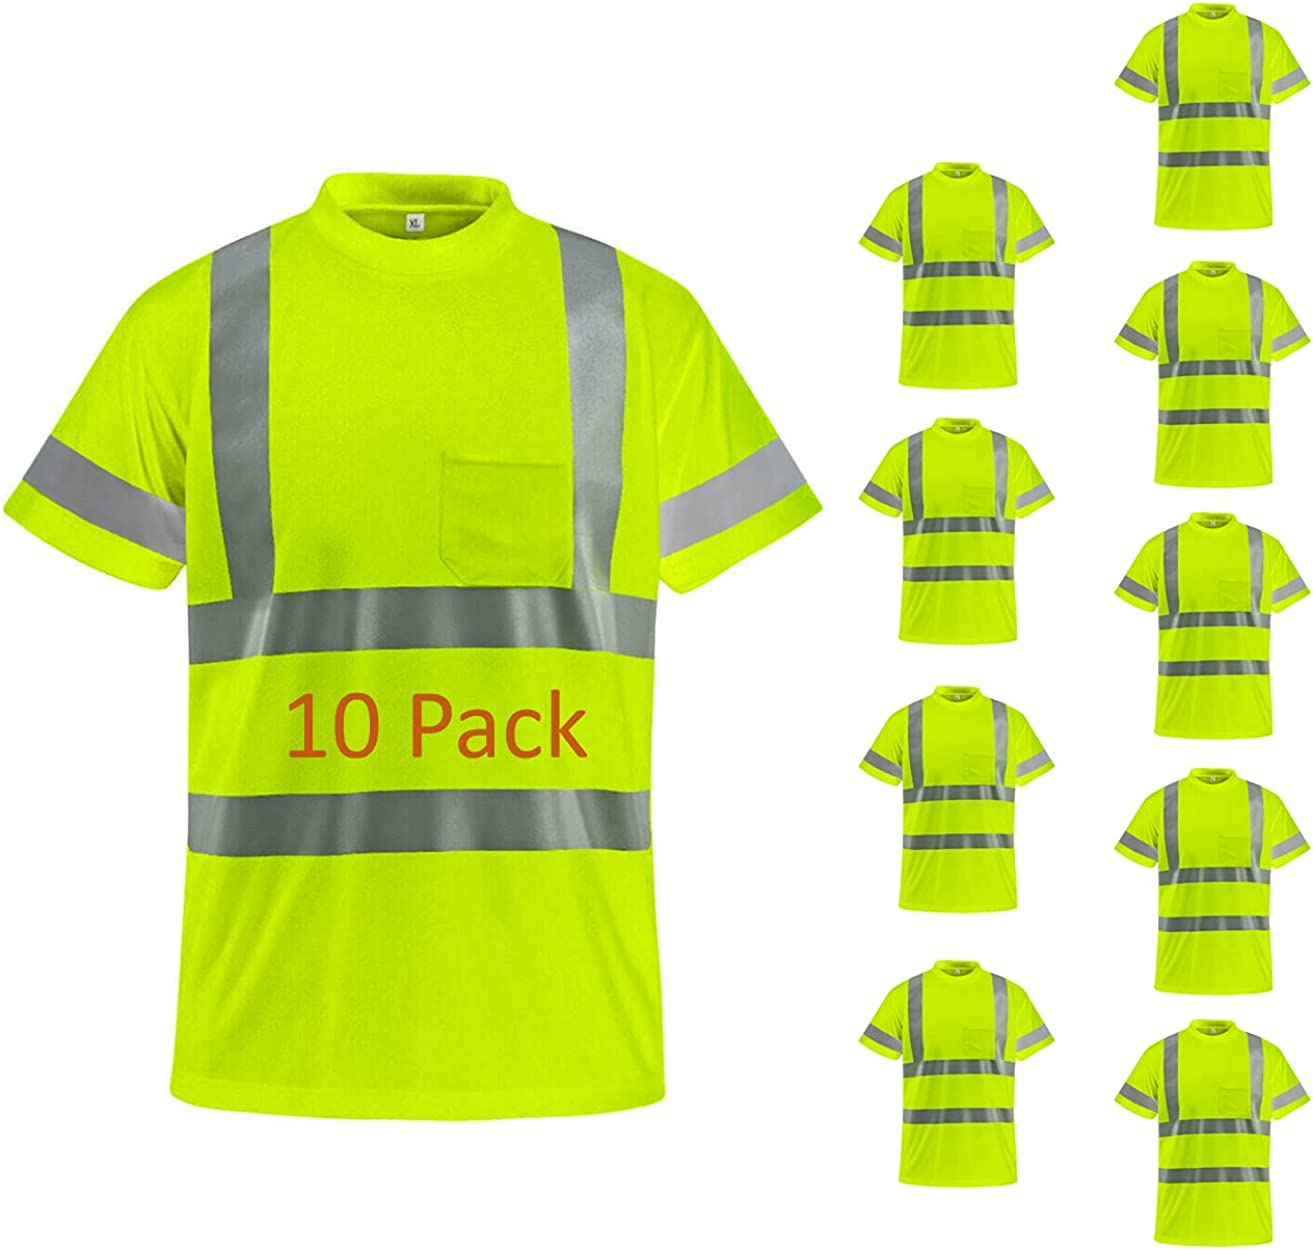 BeautyWill Safety Shirts Class Quality inspection 2 with Visibility High Ranking TOP7 Ref